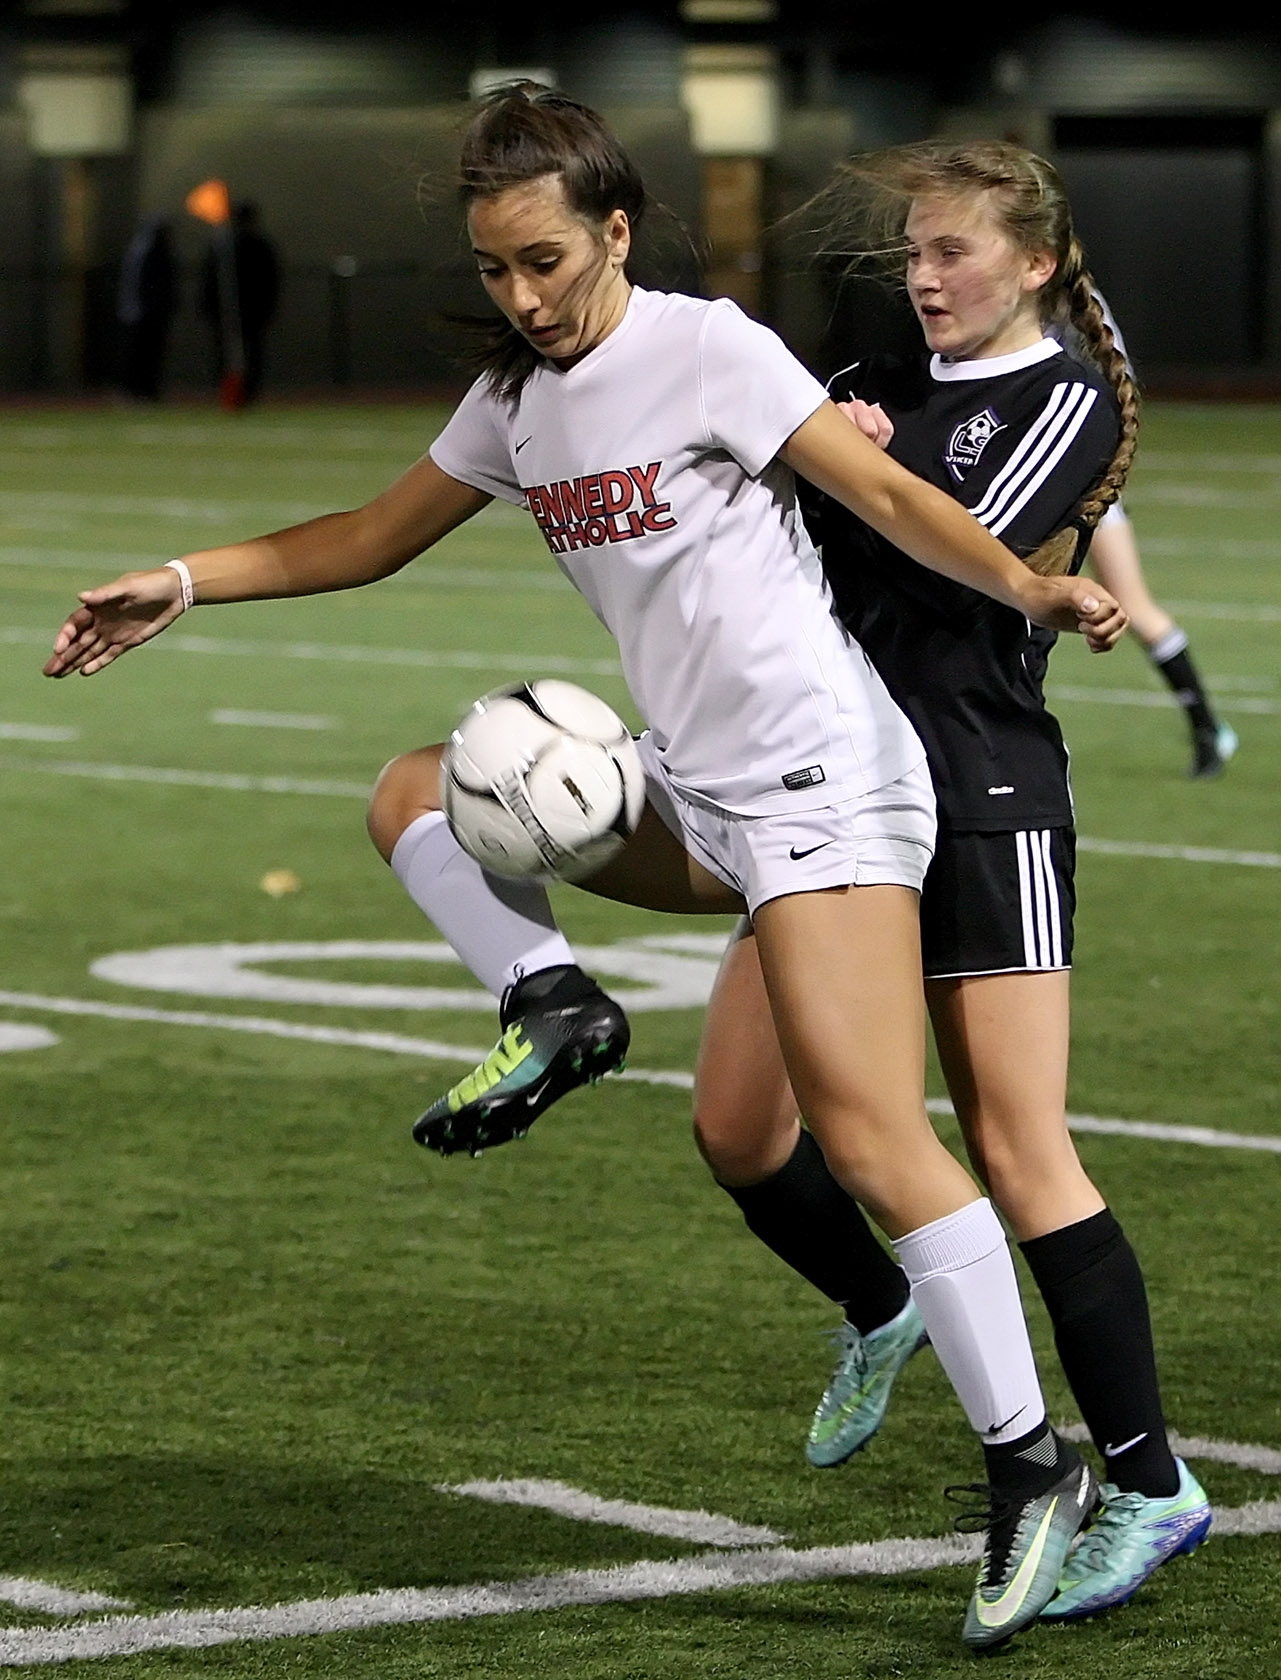 Natalie DeGagne of Kennedy Catholic keeps the ball away from Lake Stevens Jocelyn Lillesaka.